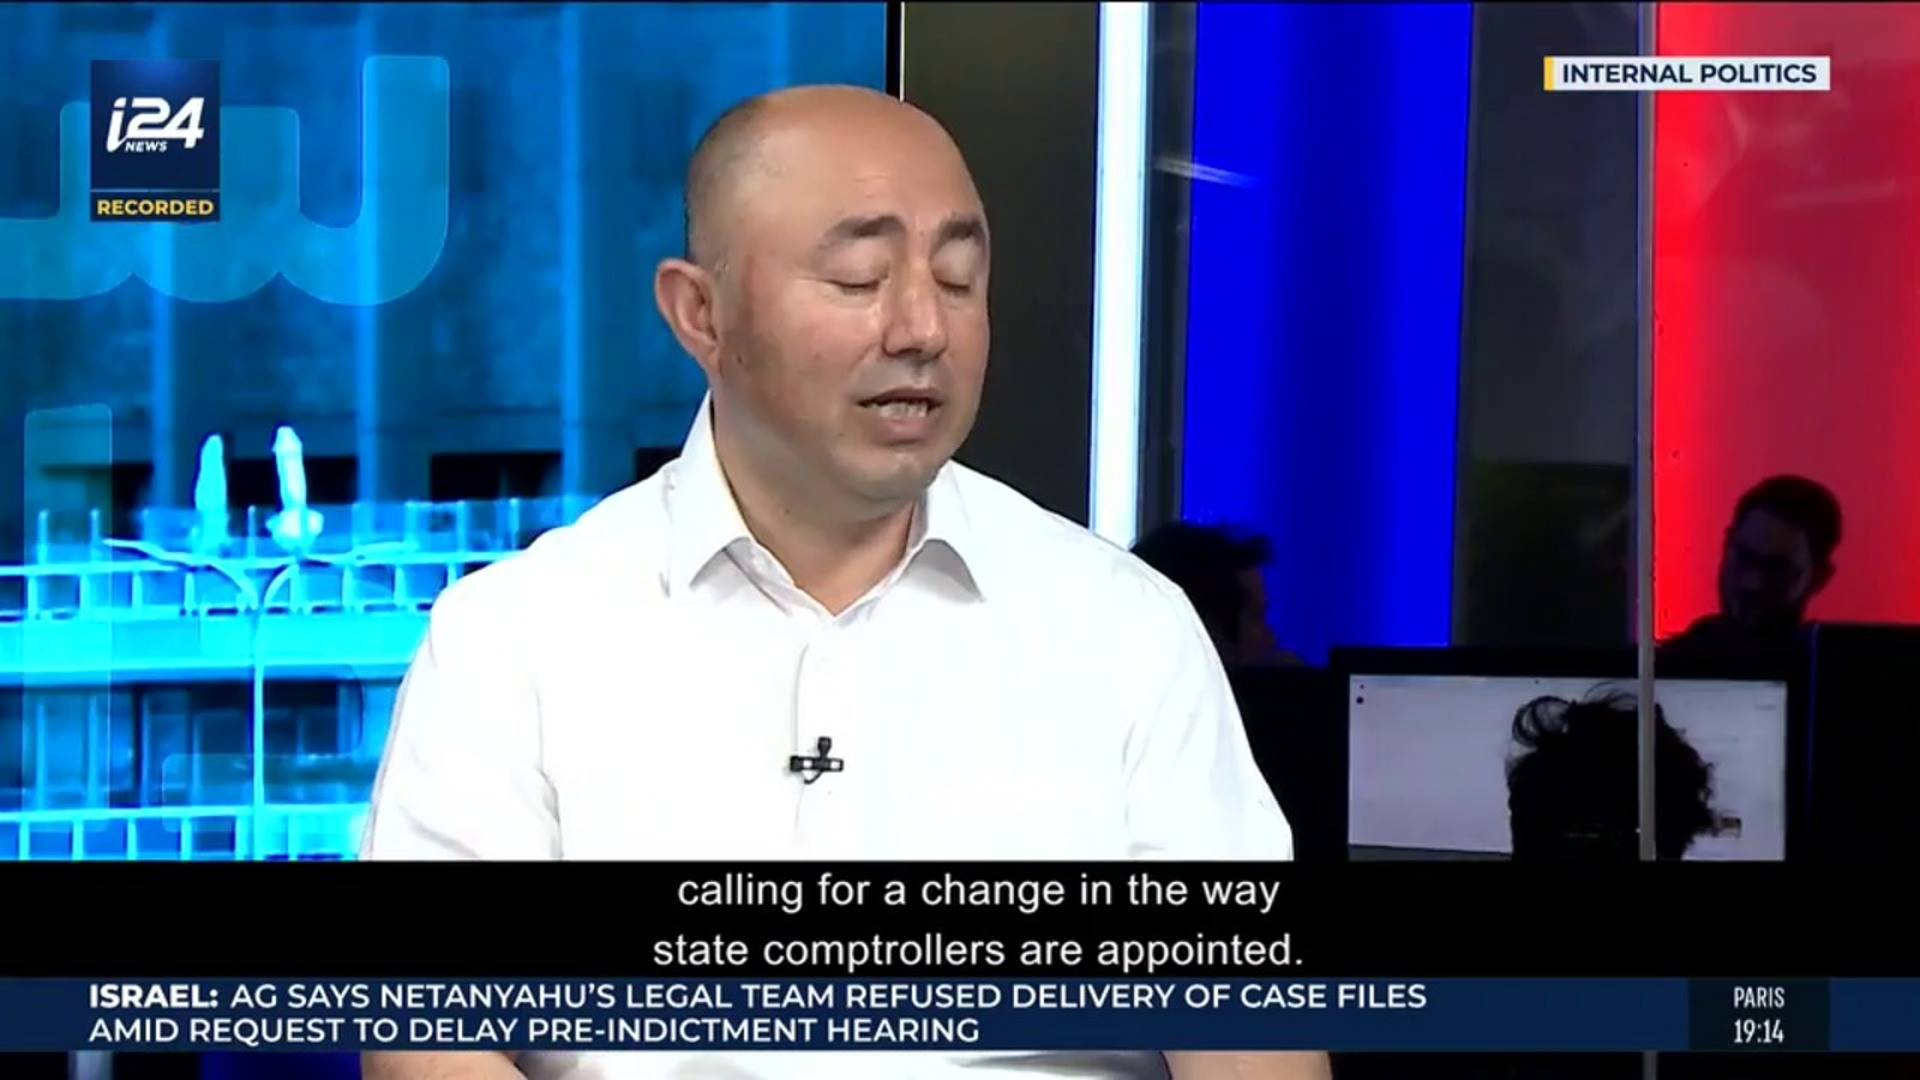 BEST OF THE ARABIC CHANNEL   Sunday, May 12th 2019   I24NEWS